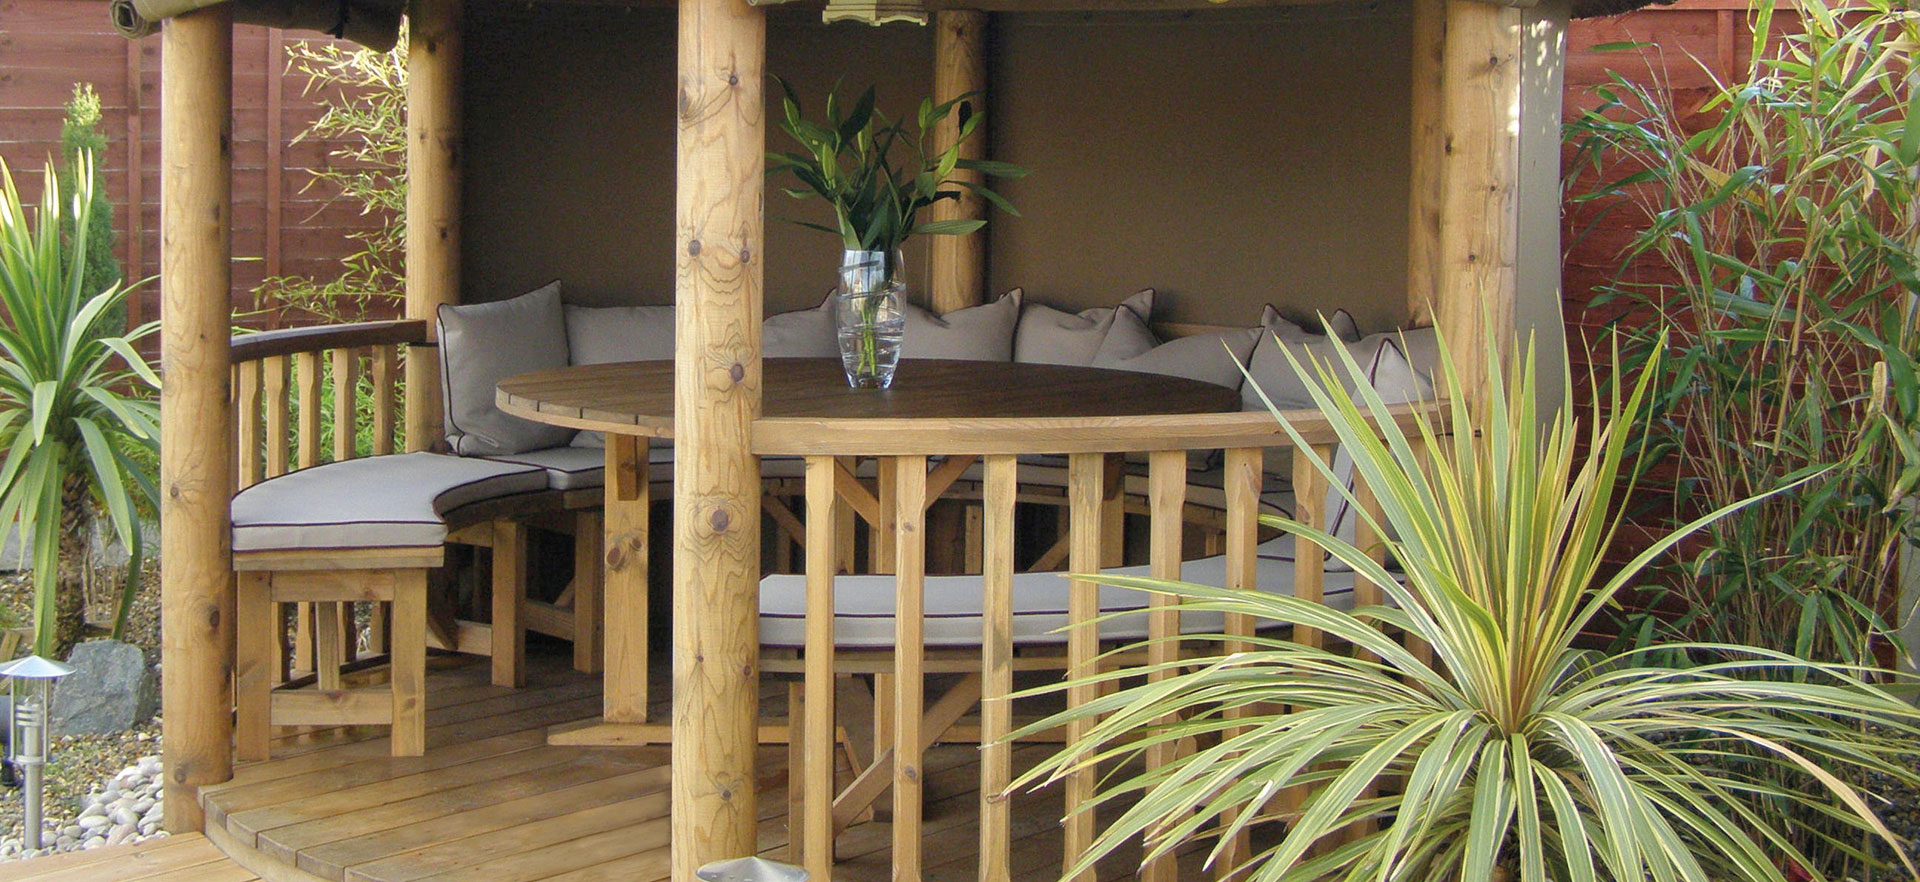 3 metre thatched gazebo close up of inside